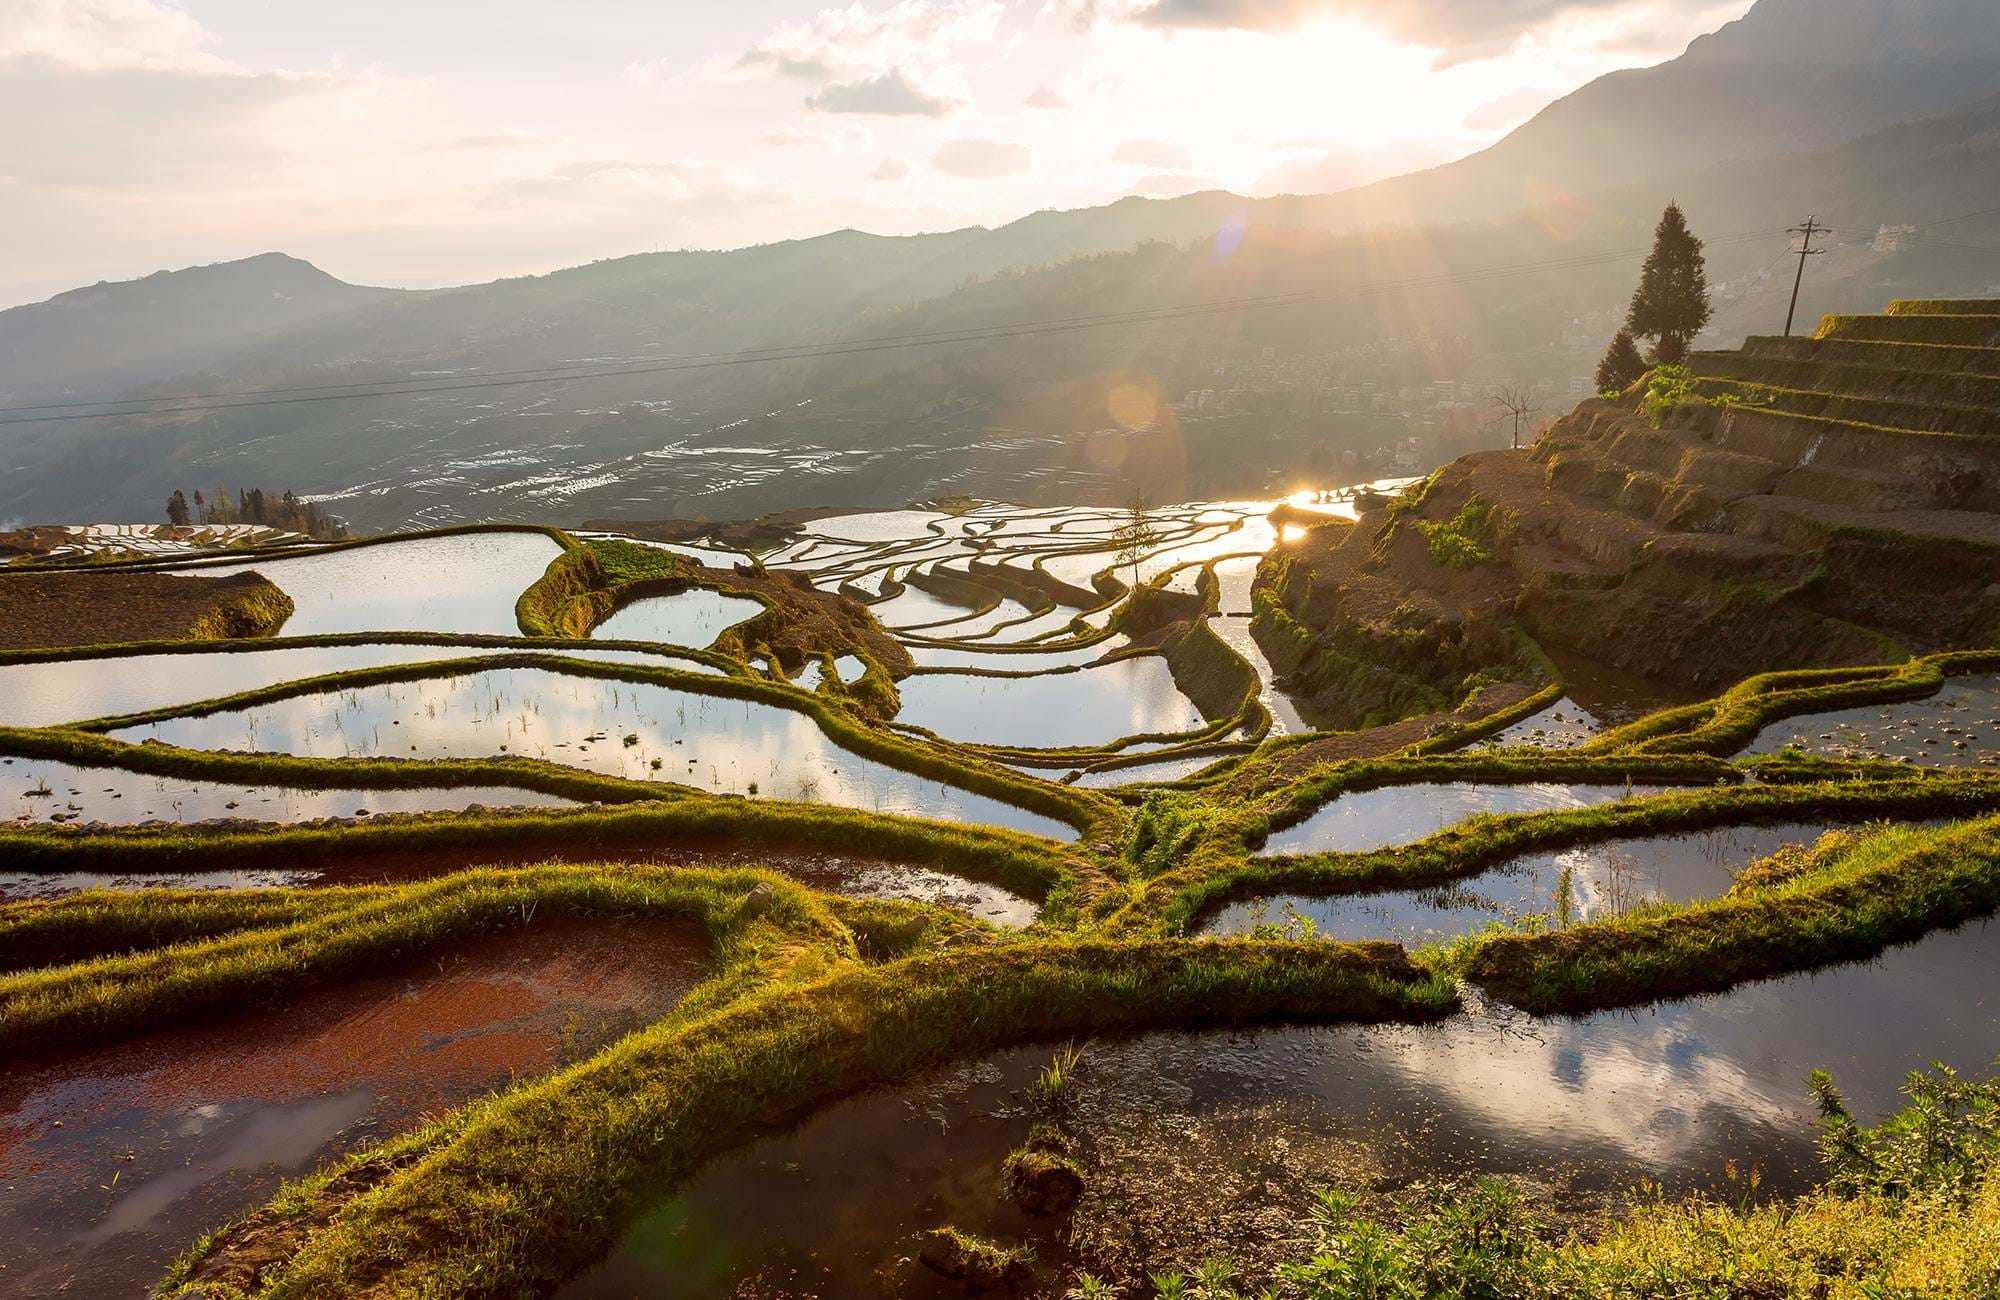 china-yuan-yang-terraced-rice-field-duo-yi-shu-village